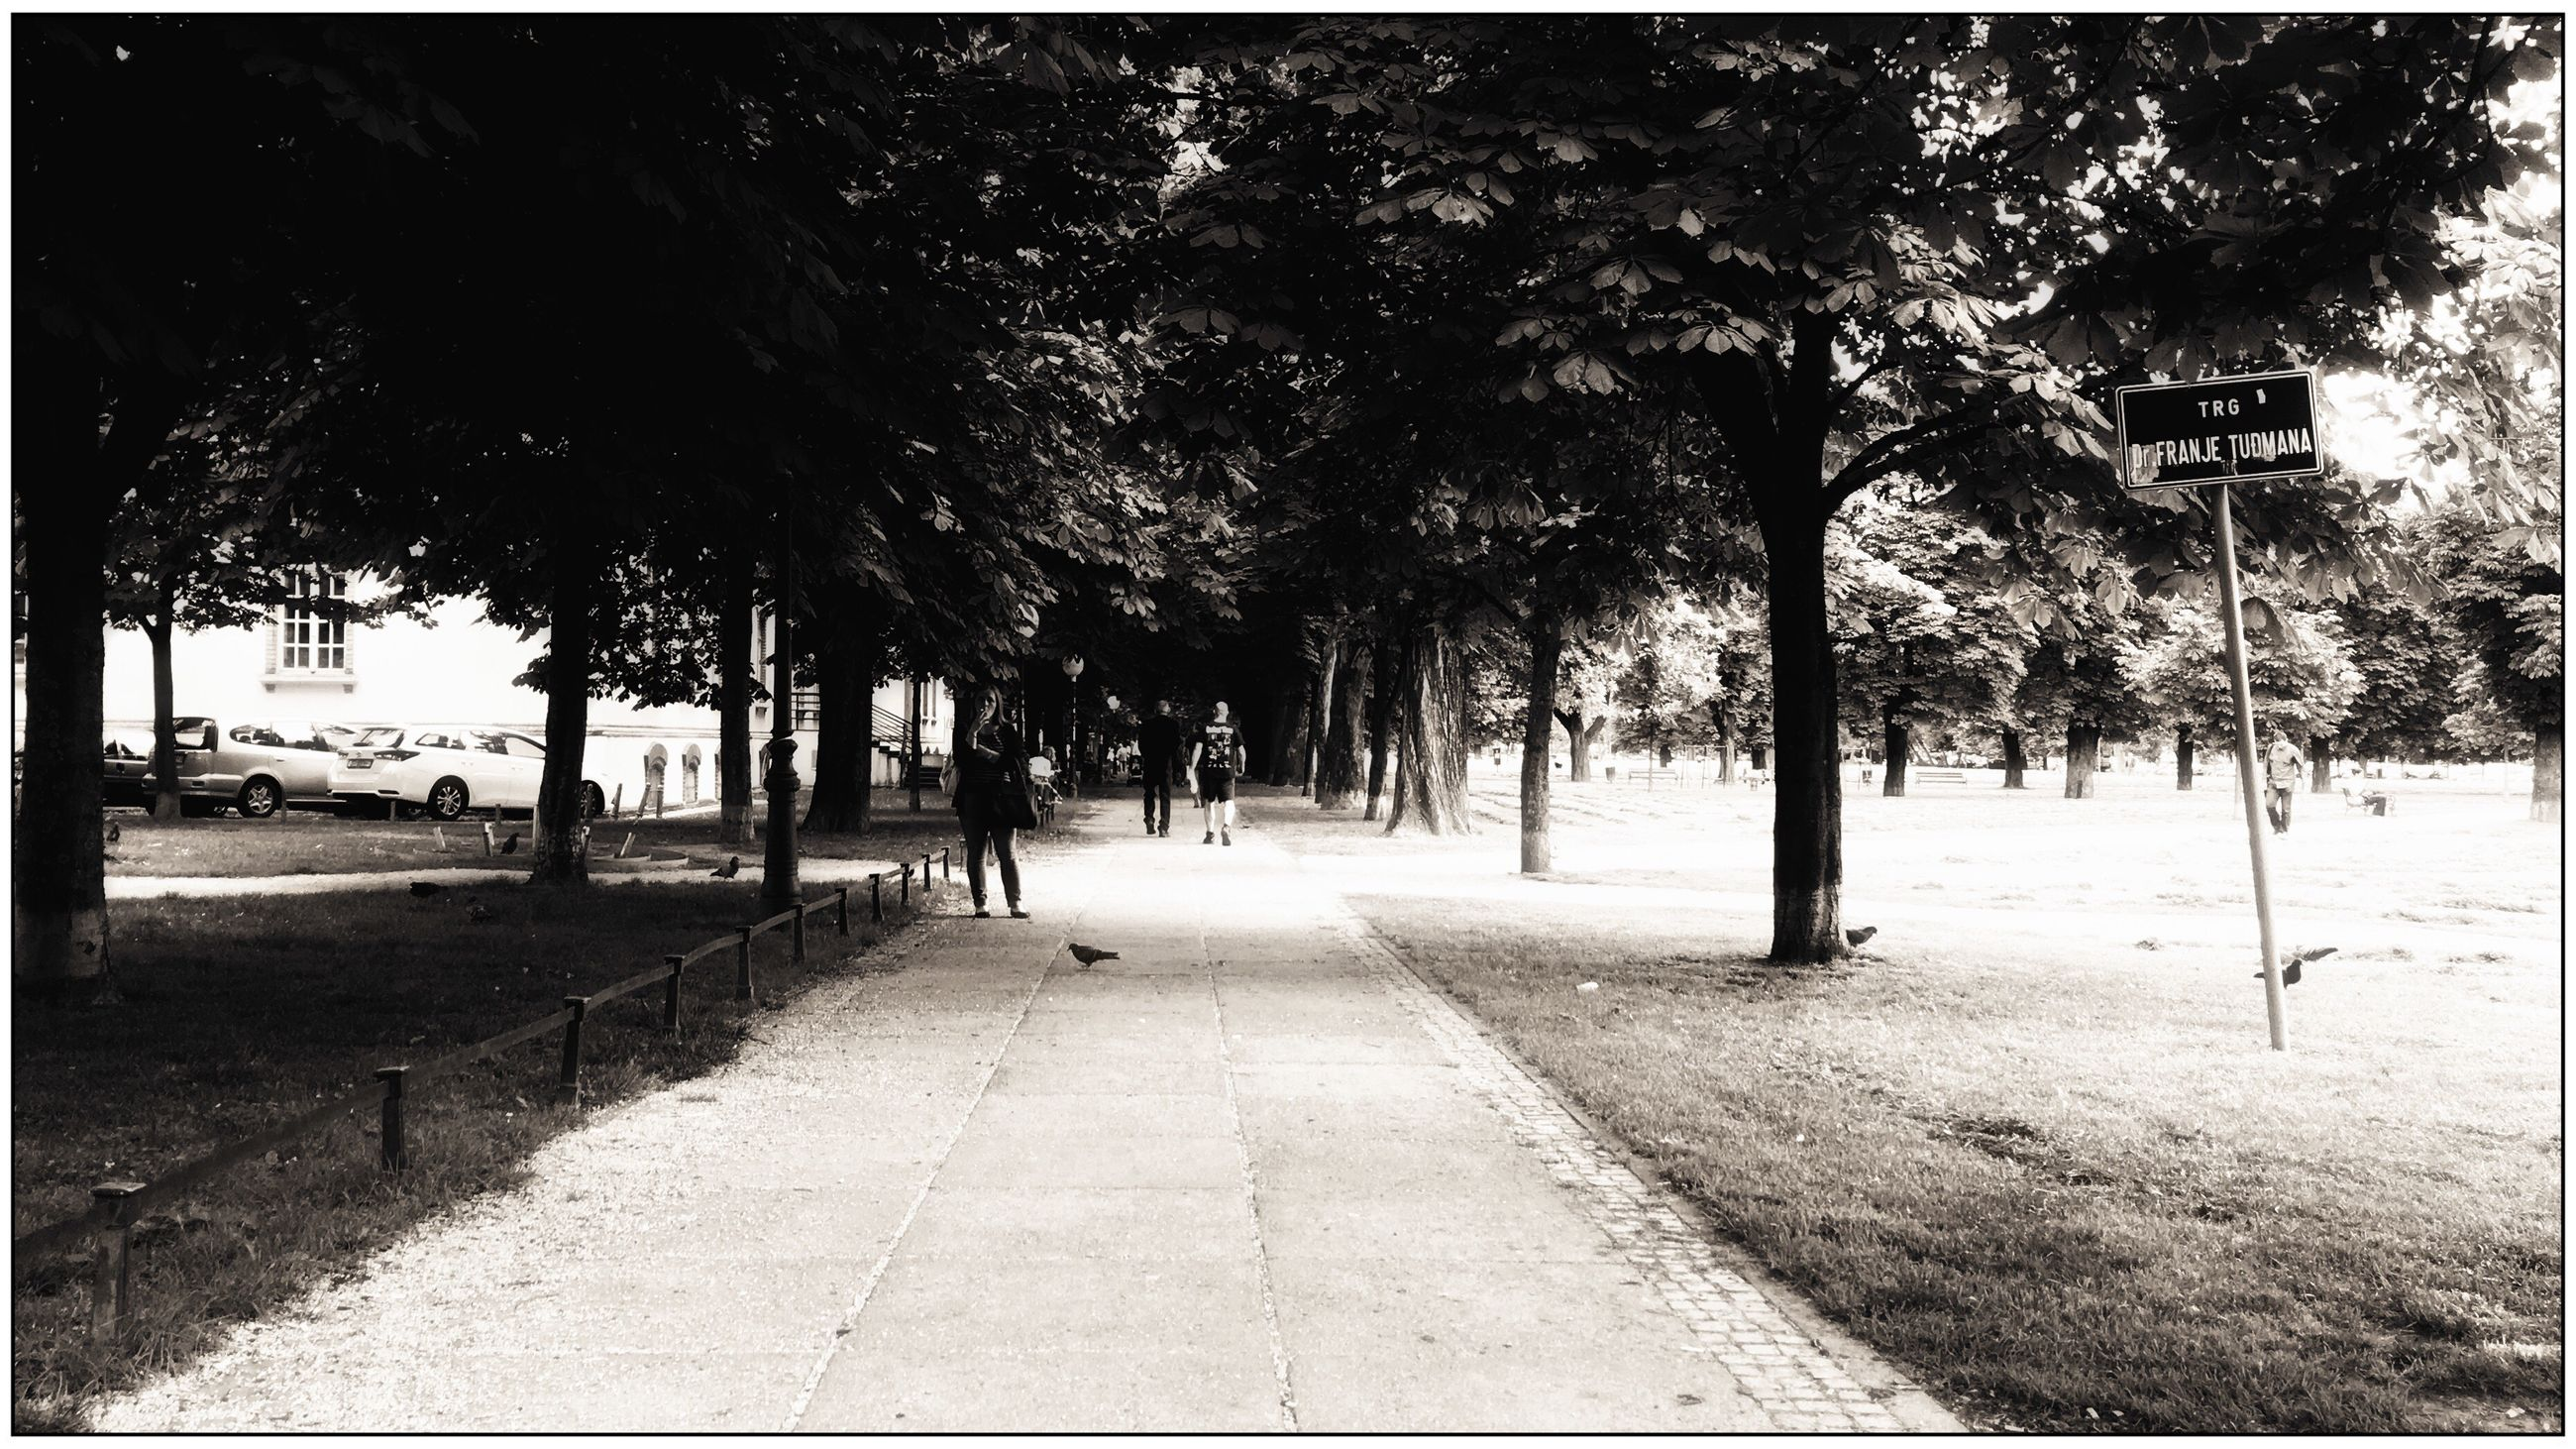 tree, transfer print, the way forward, auto post production filter, footpath, tranquility, shadow, diminishing perspective, tree trunk, growth, tranquil scene, treelined, road, nature, empty, sunlight, sky, scenics, day, outdoors